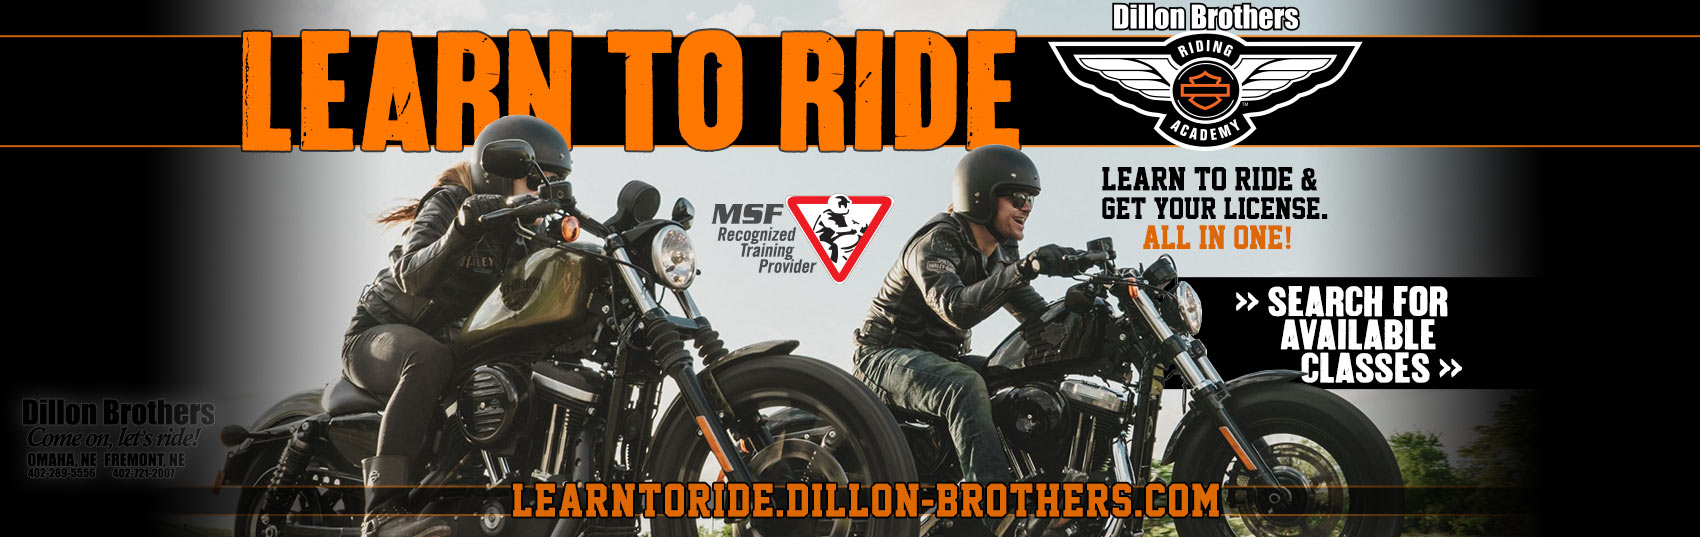 Learn to ride a motorcycle at Dillon Brothers